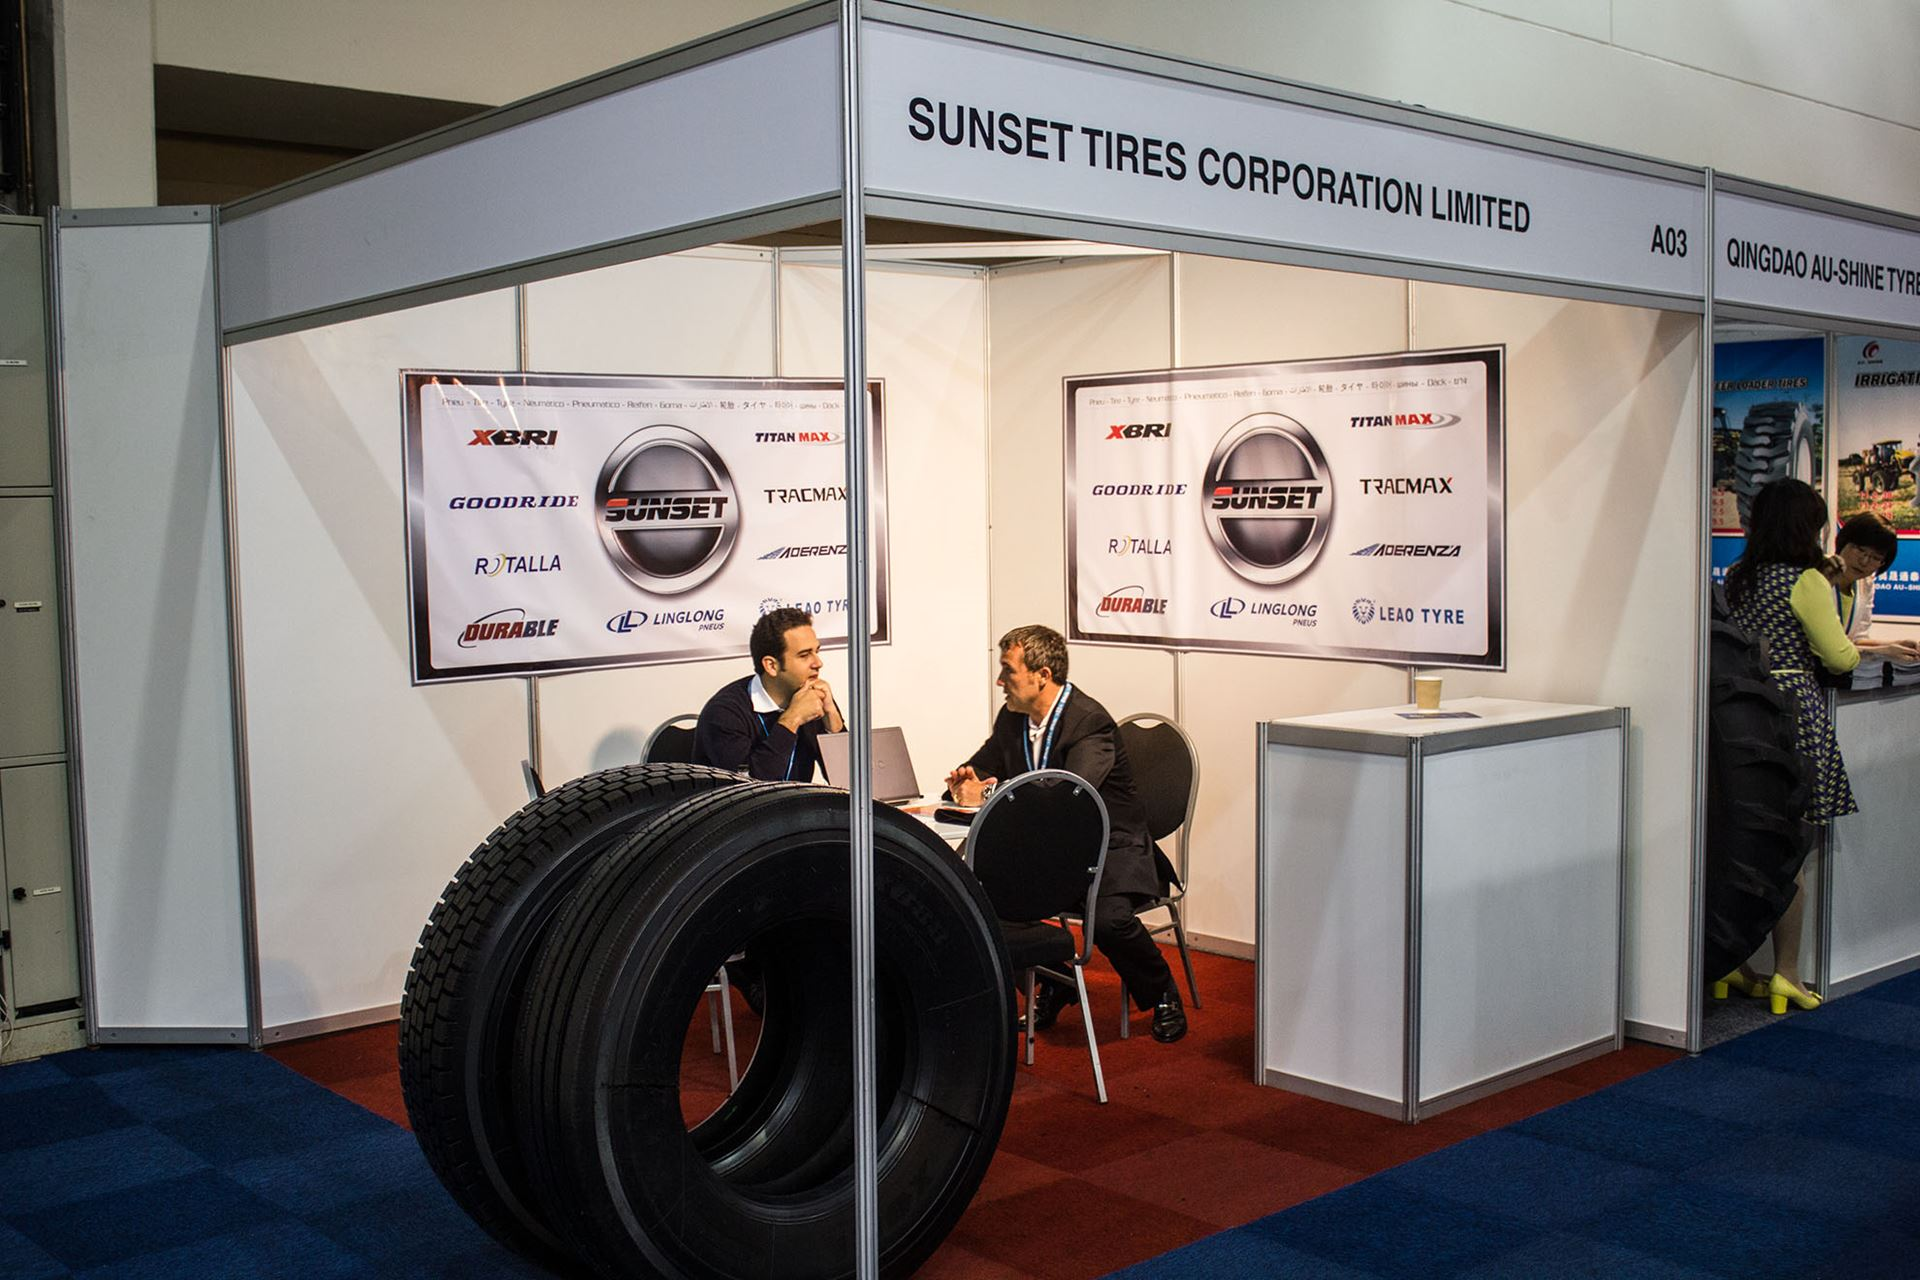 Tyre-Expo-South-Africa-2014-Sunset-Tyres